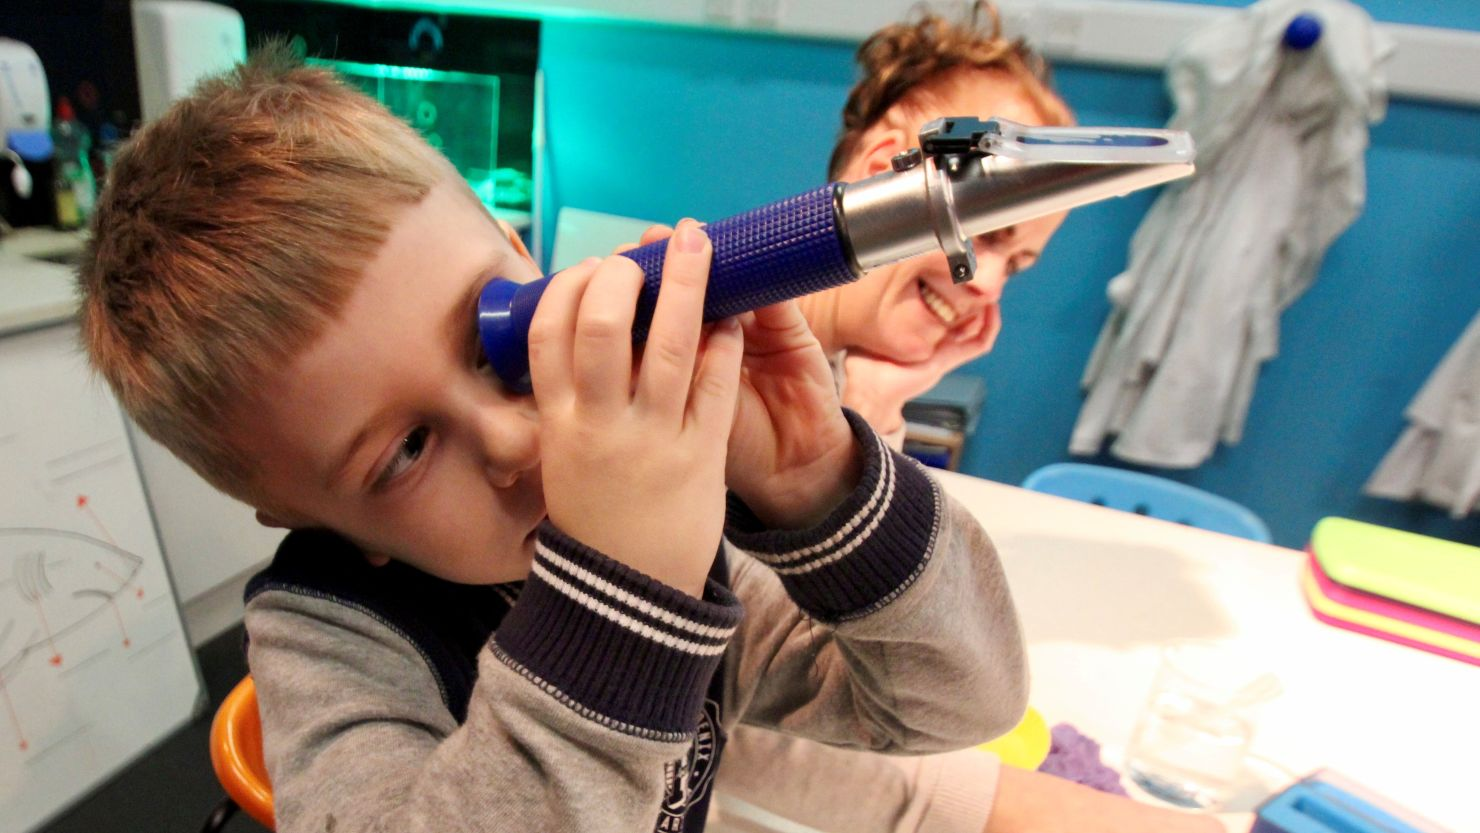 Child with Telescope